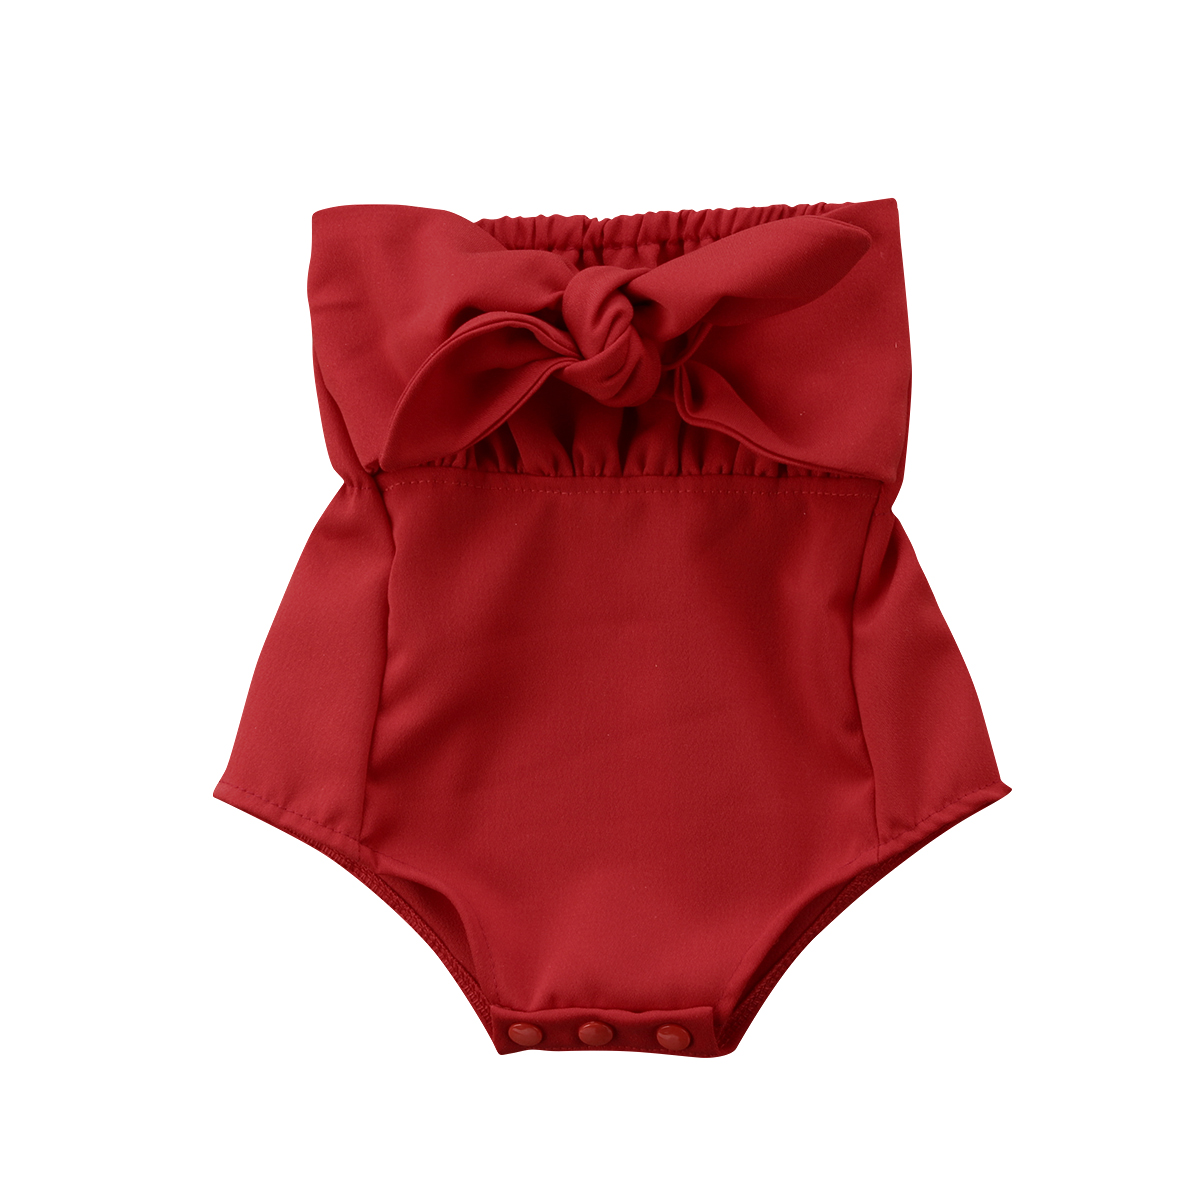 Toddler Infant Baby Girl Off Shoulder Red Bowknot   Romper   Jumpsuit Baby Clothing